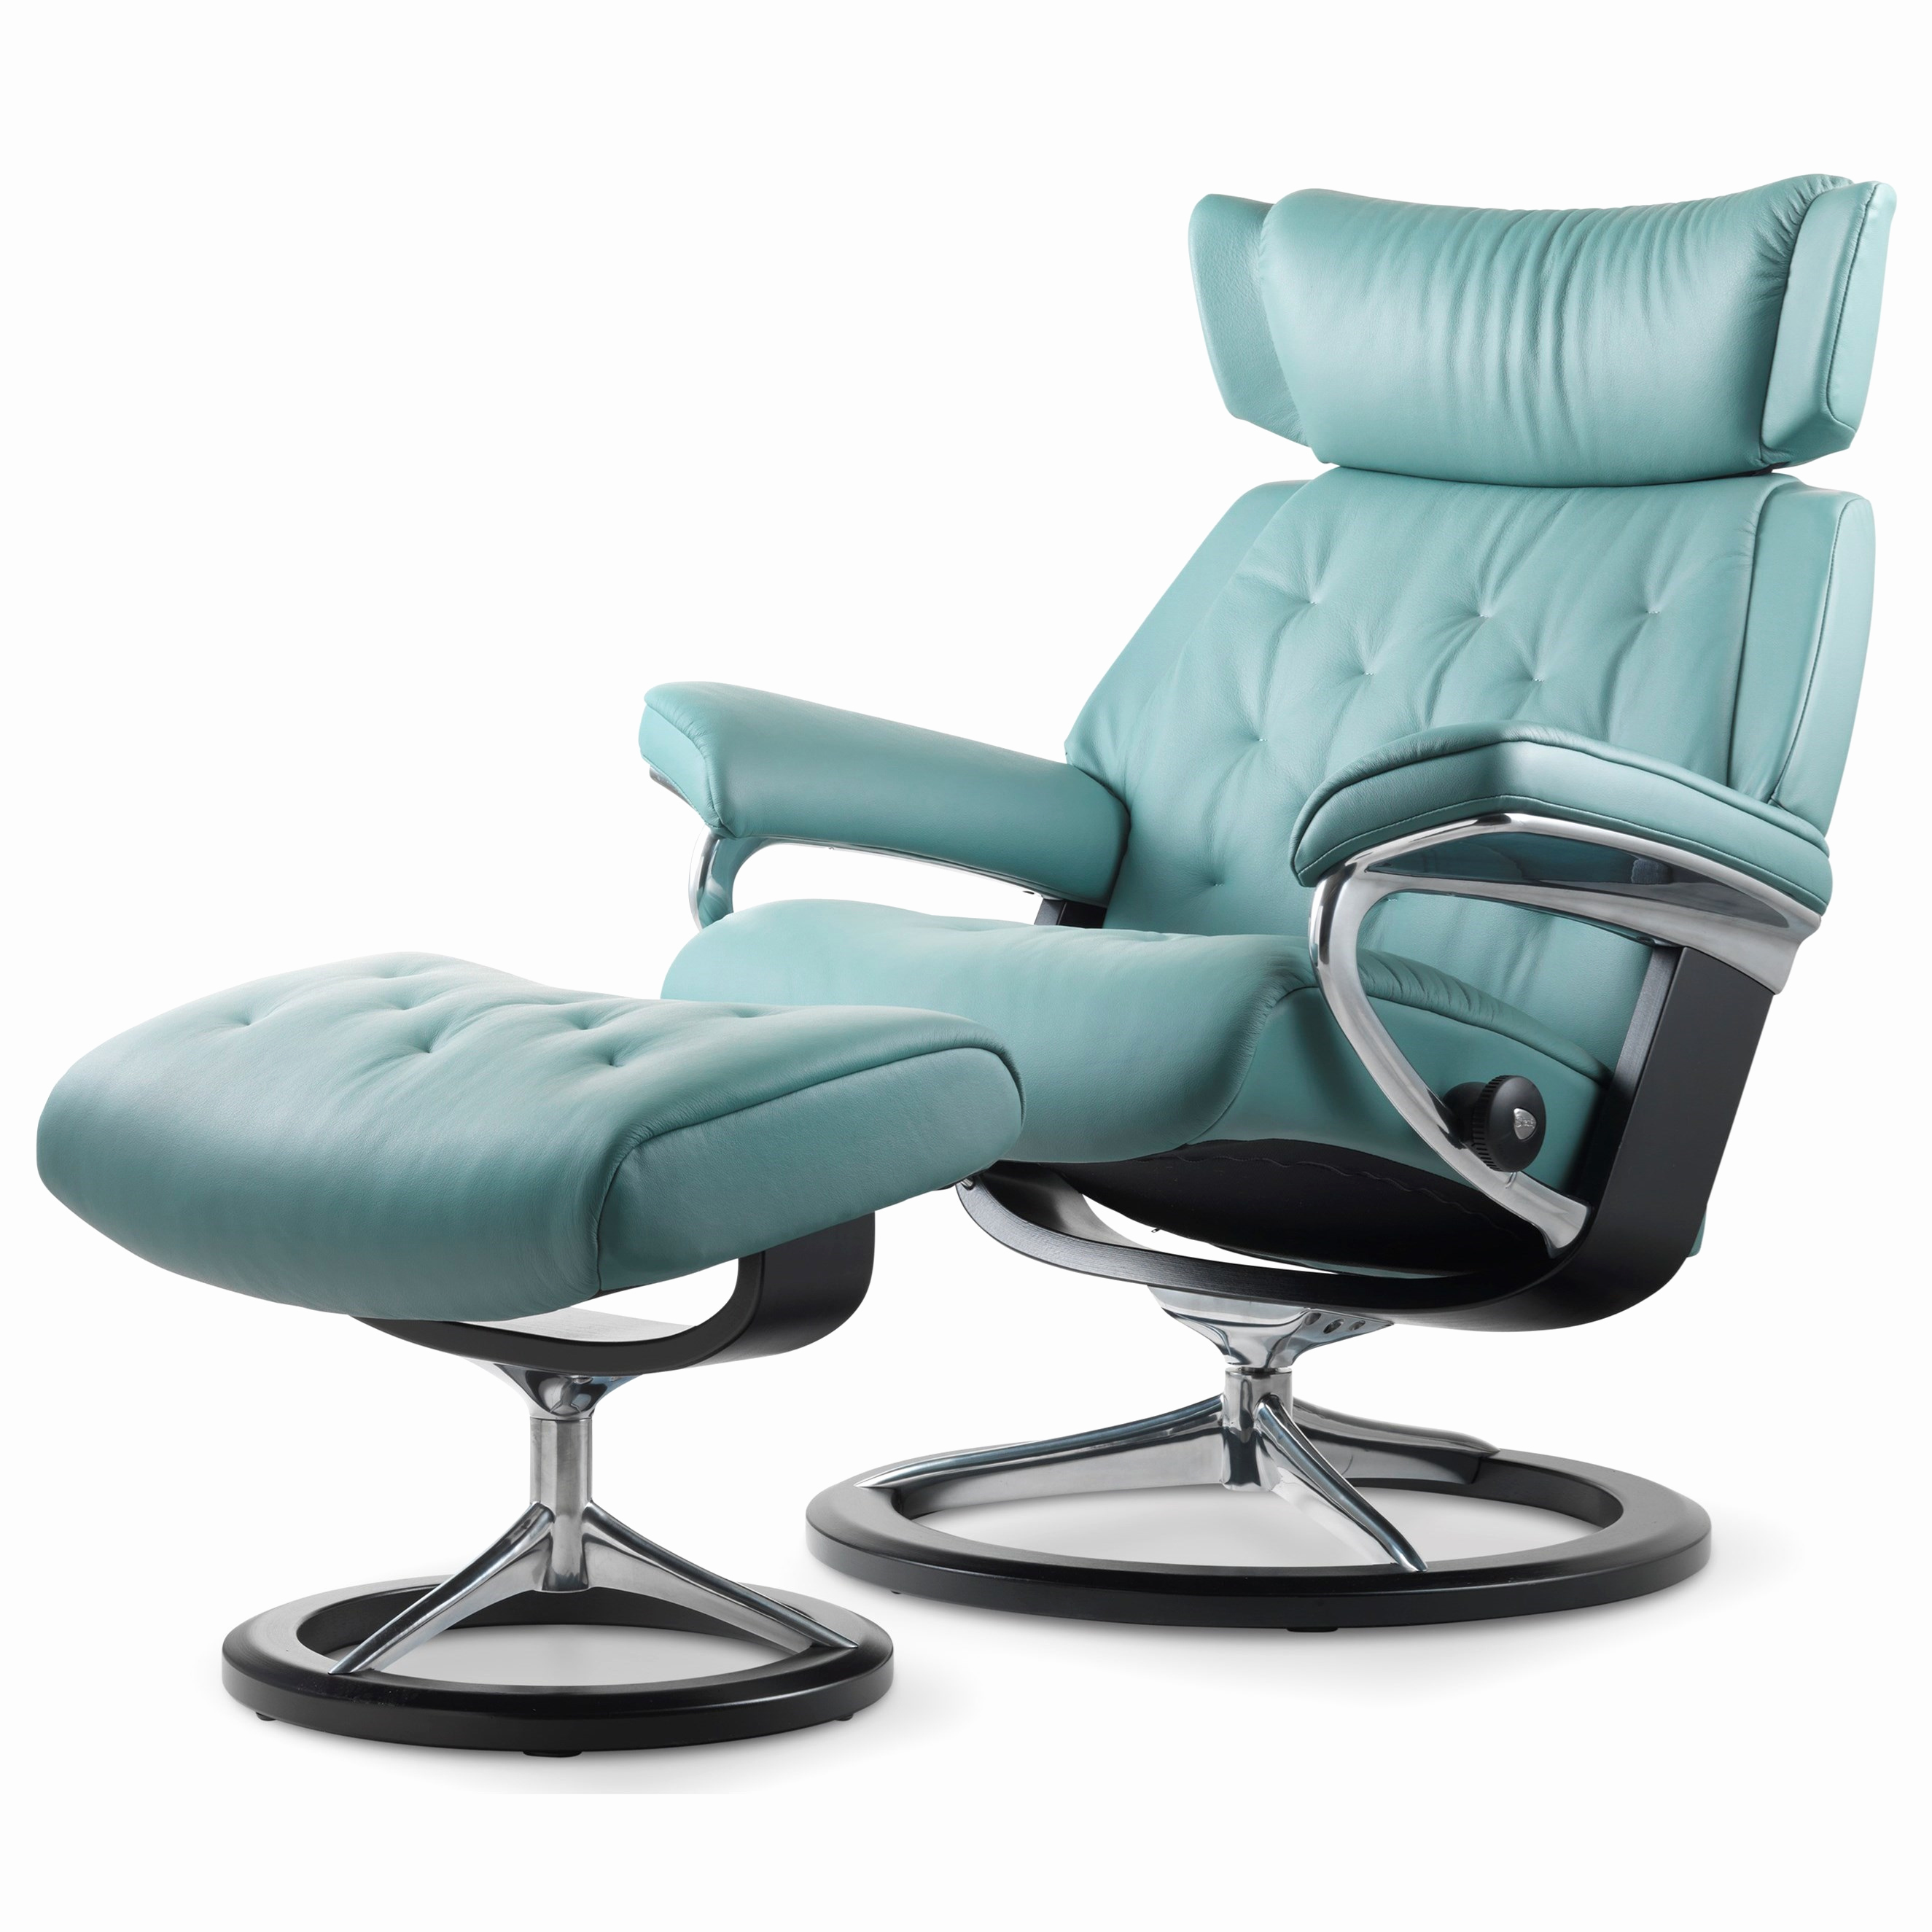 Fauteuil Stressless Prix Neuf Beau Images Fauteuil Relax Stressless Prix Nouveau Stressless Skyline Small